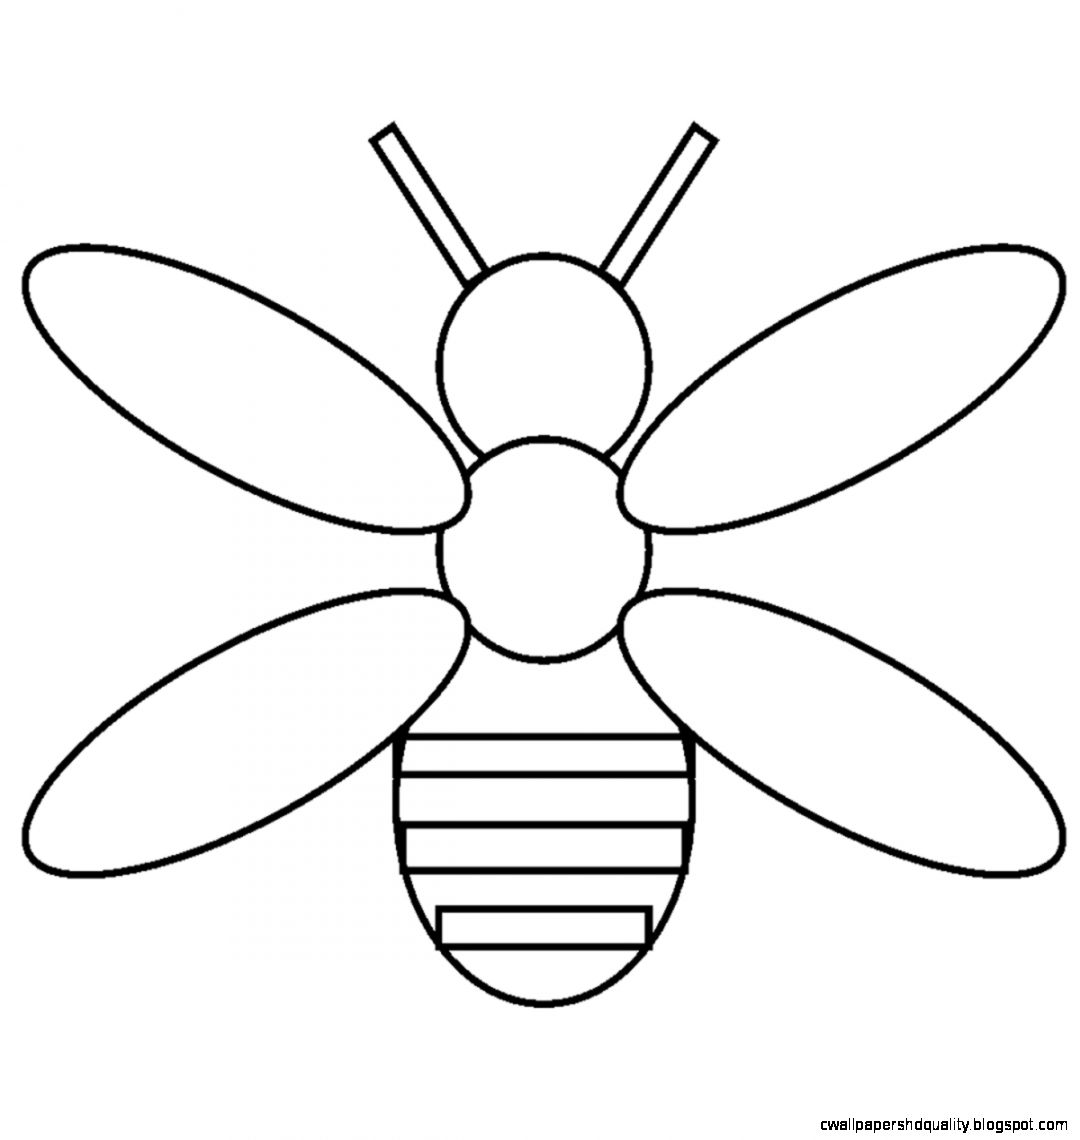 1080x1140 Simple Insect Drawing Wallpapers Hd Quality